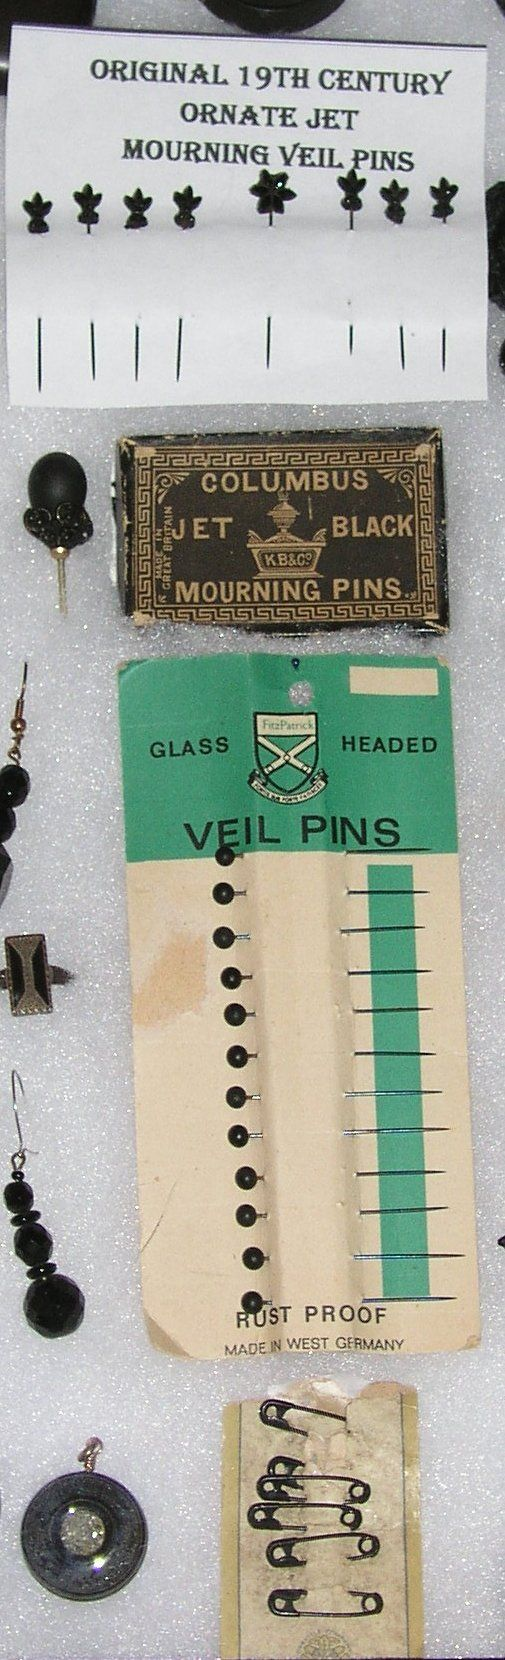 19th century black mourning pins. As it was unseemly for a woman in mourning to wear anything that shone, dull black mourning pins secured clothing.